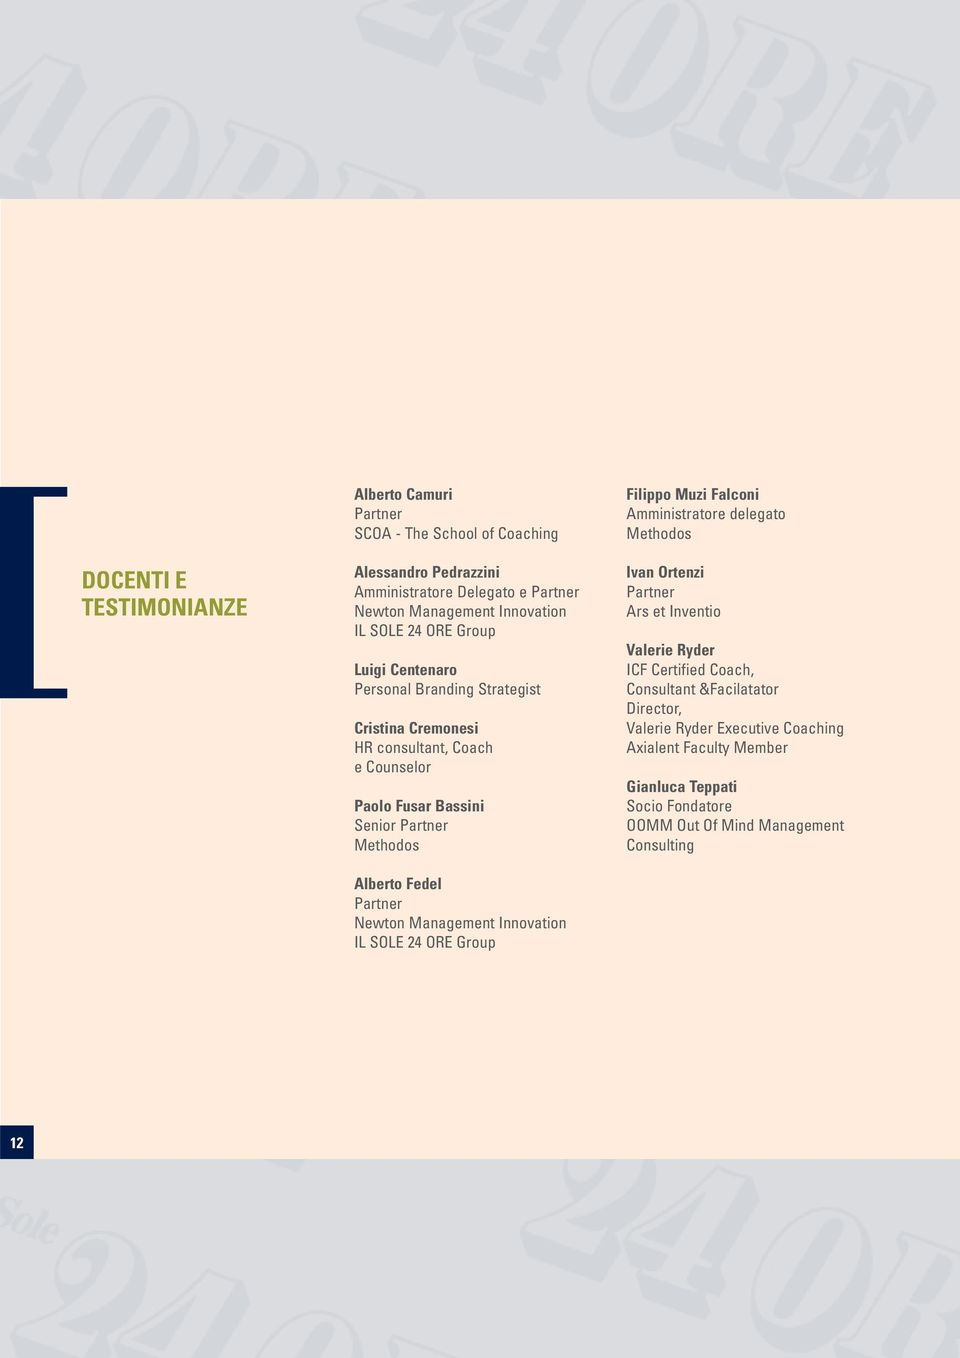 Partner Newton Management Innovation IL SOLE 24 ORE Group Filippo Muzi Falconi Amministratore delegato Methodos Ivan Ortenzi Partner Ars et Inventio Valerie Ryder ICF